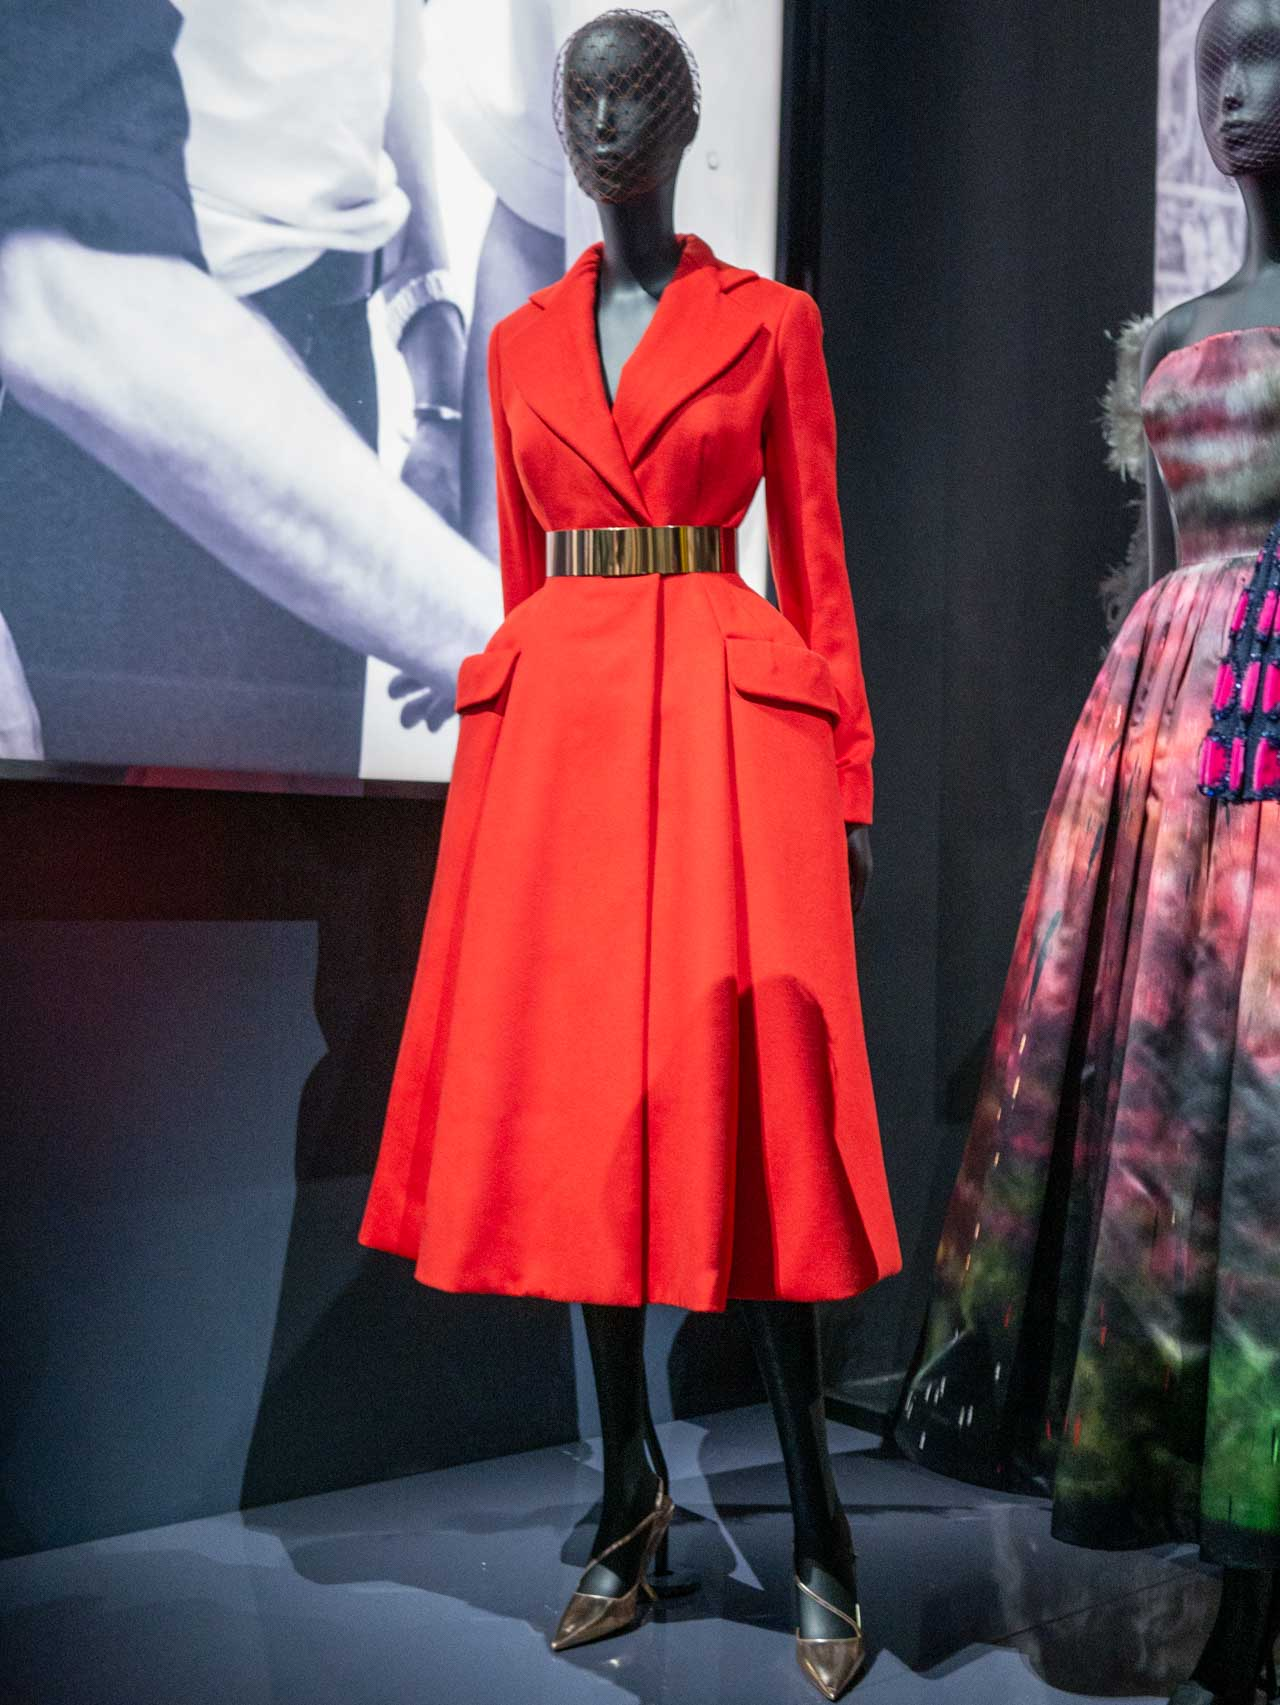 Christian Dior by Raf Simons. Haute Couture, Autumn-Winter 2012. Red wool cashmere coat. Image 1.